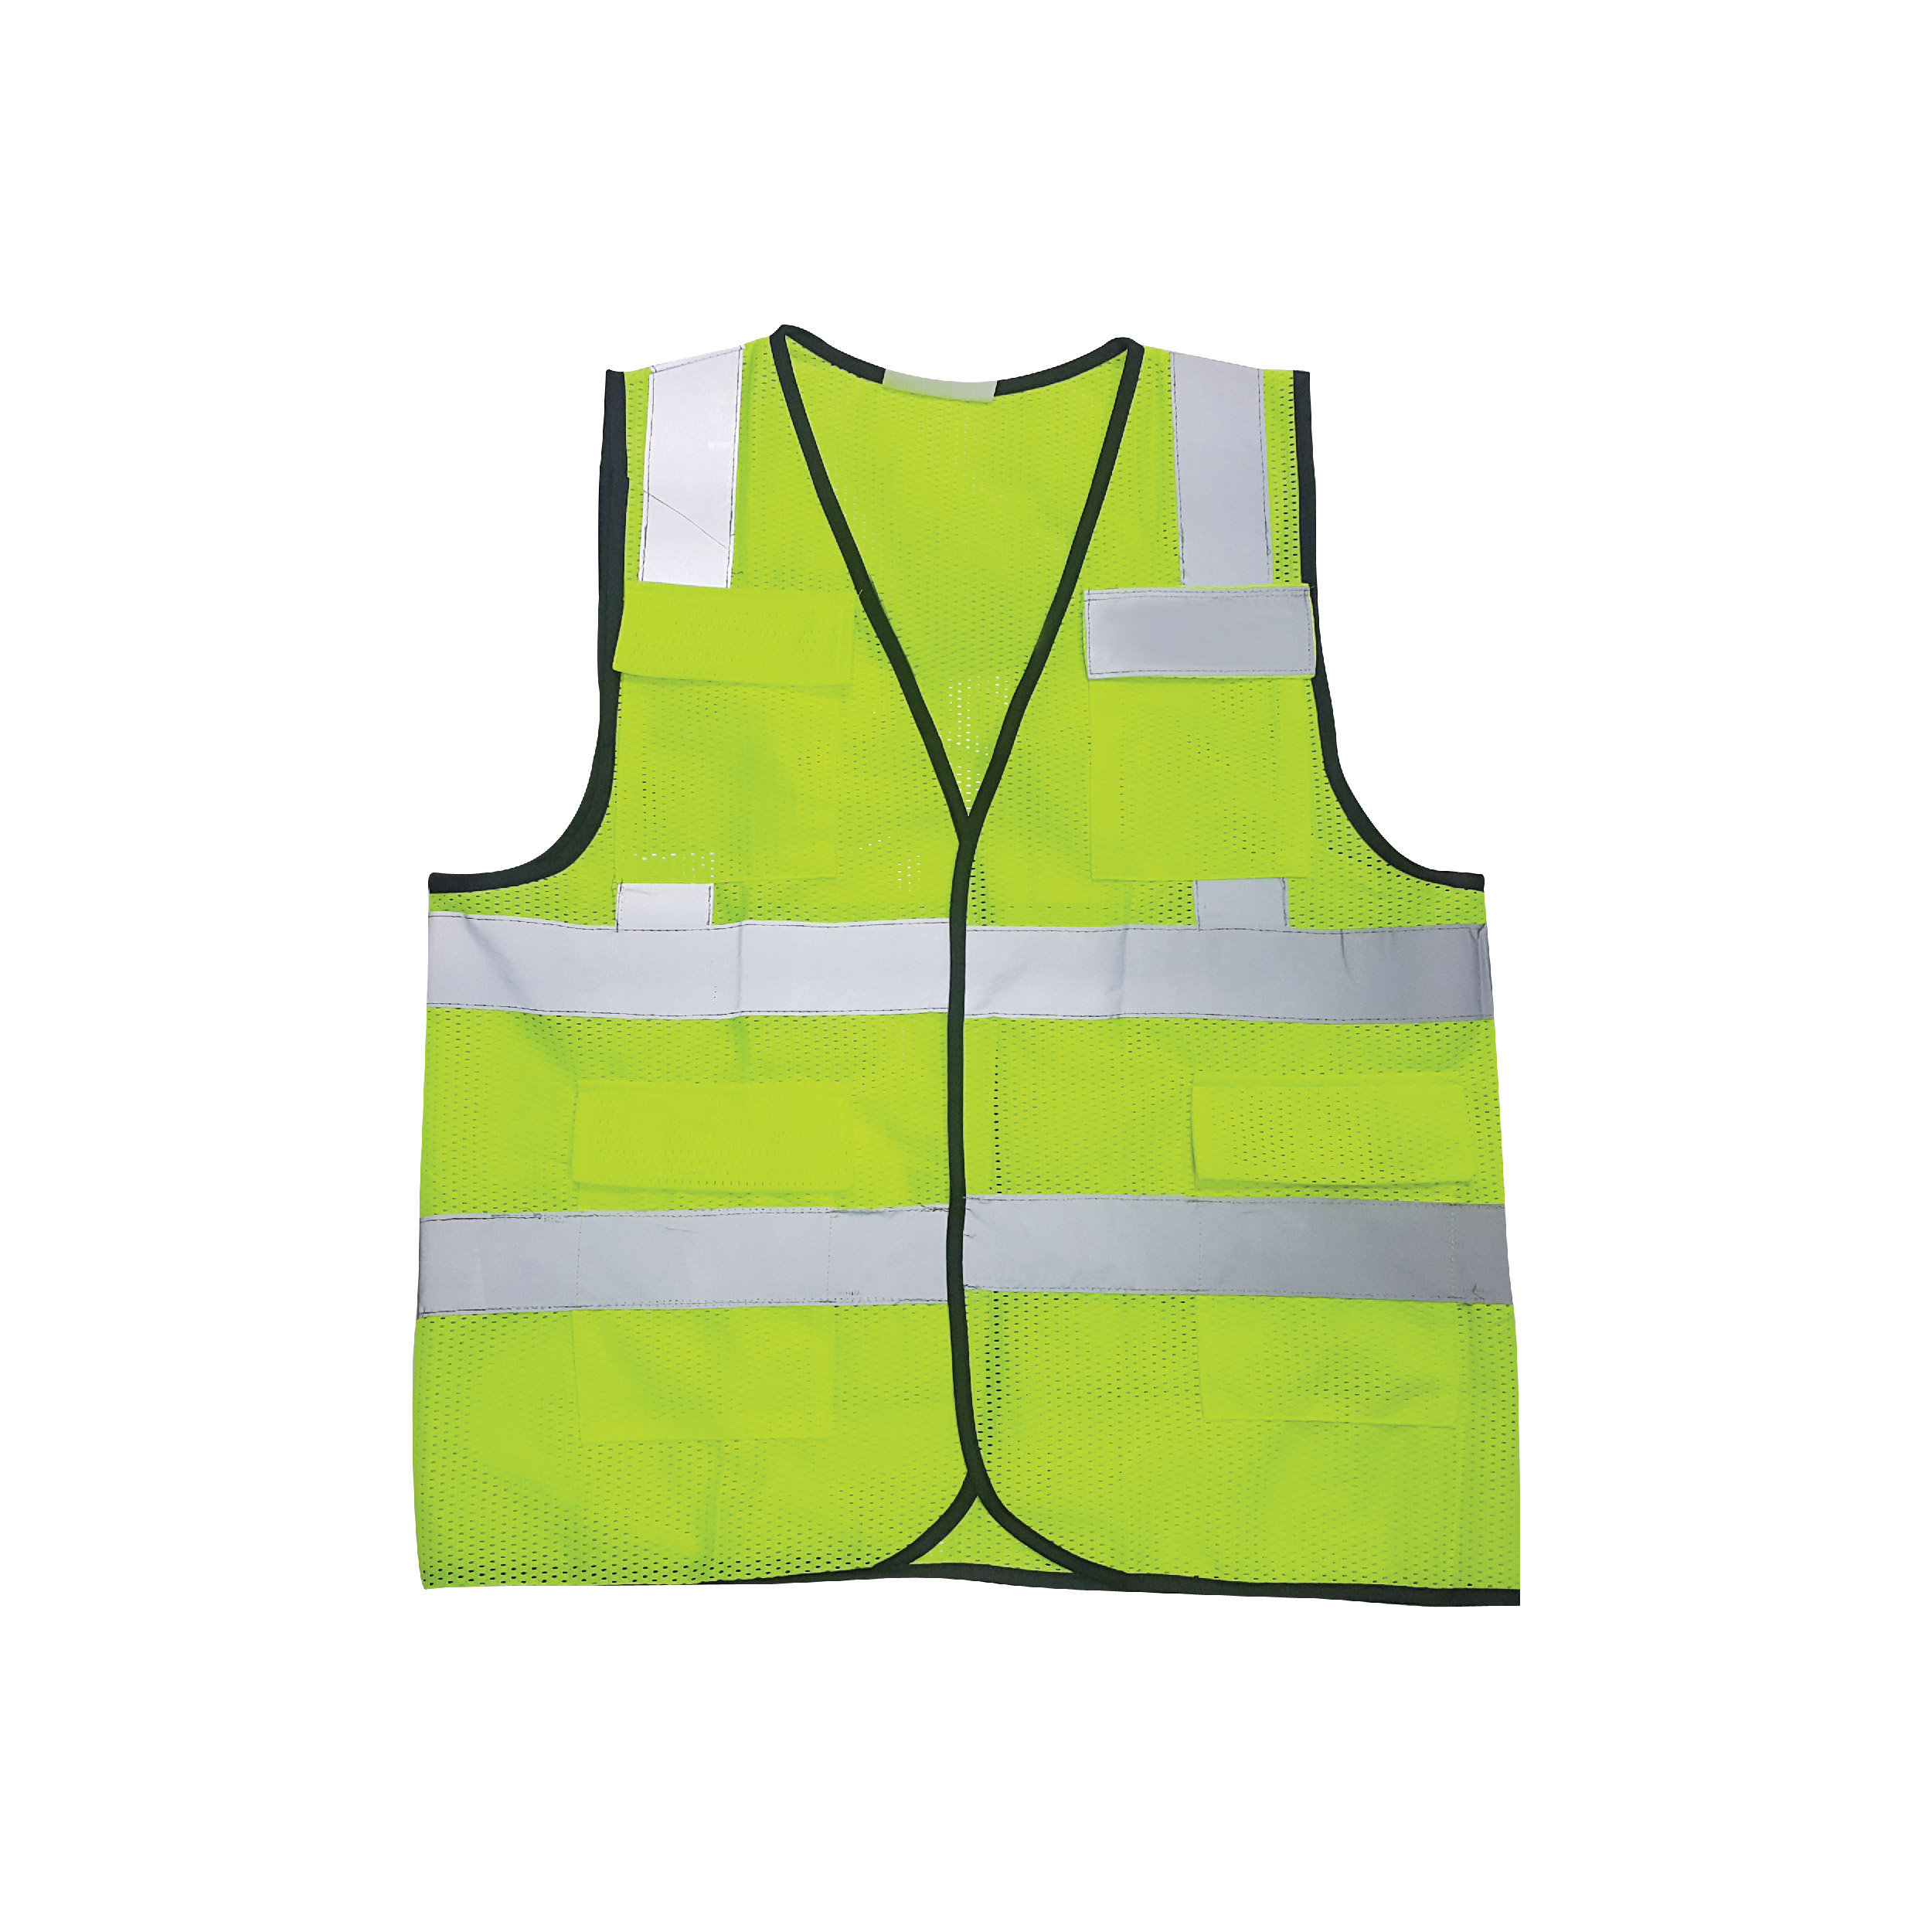 Safety Vest with Reflective Tapes